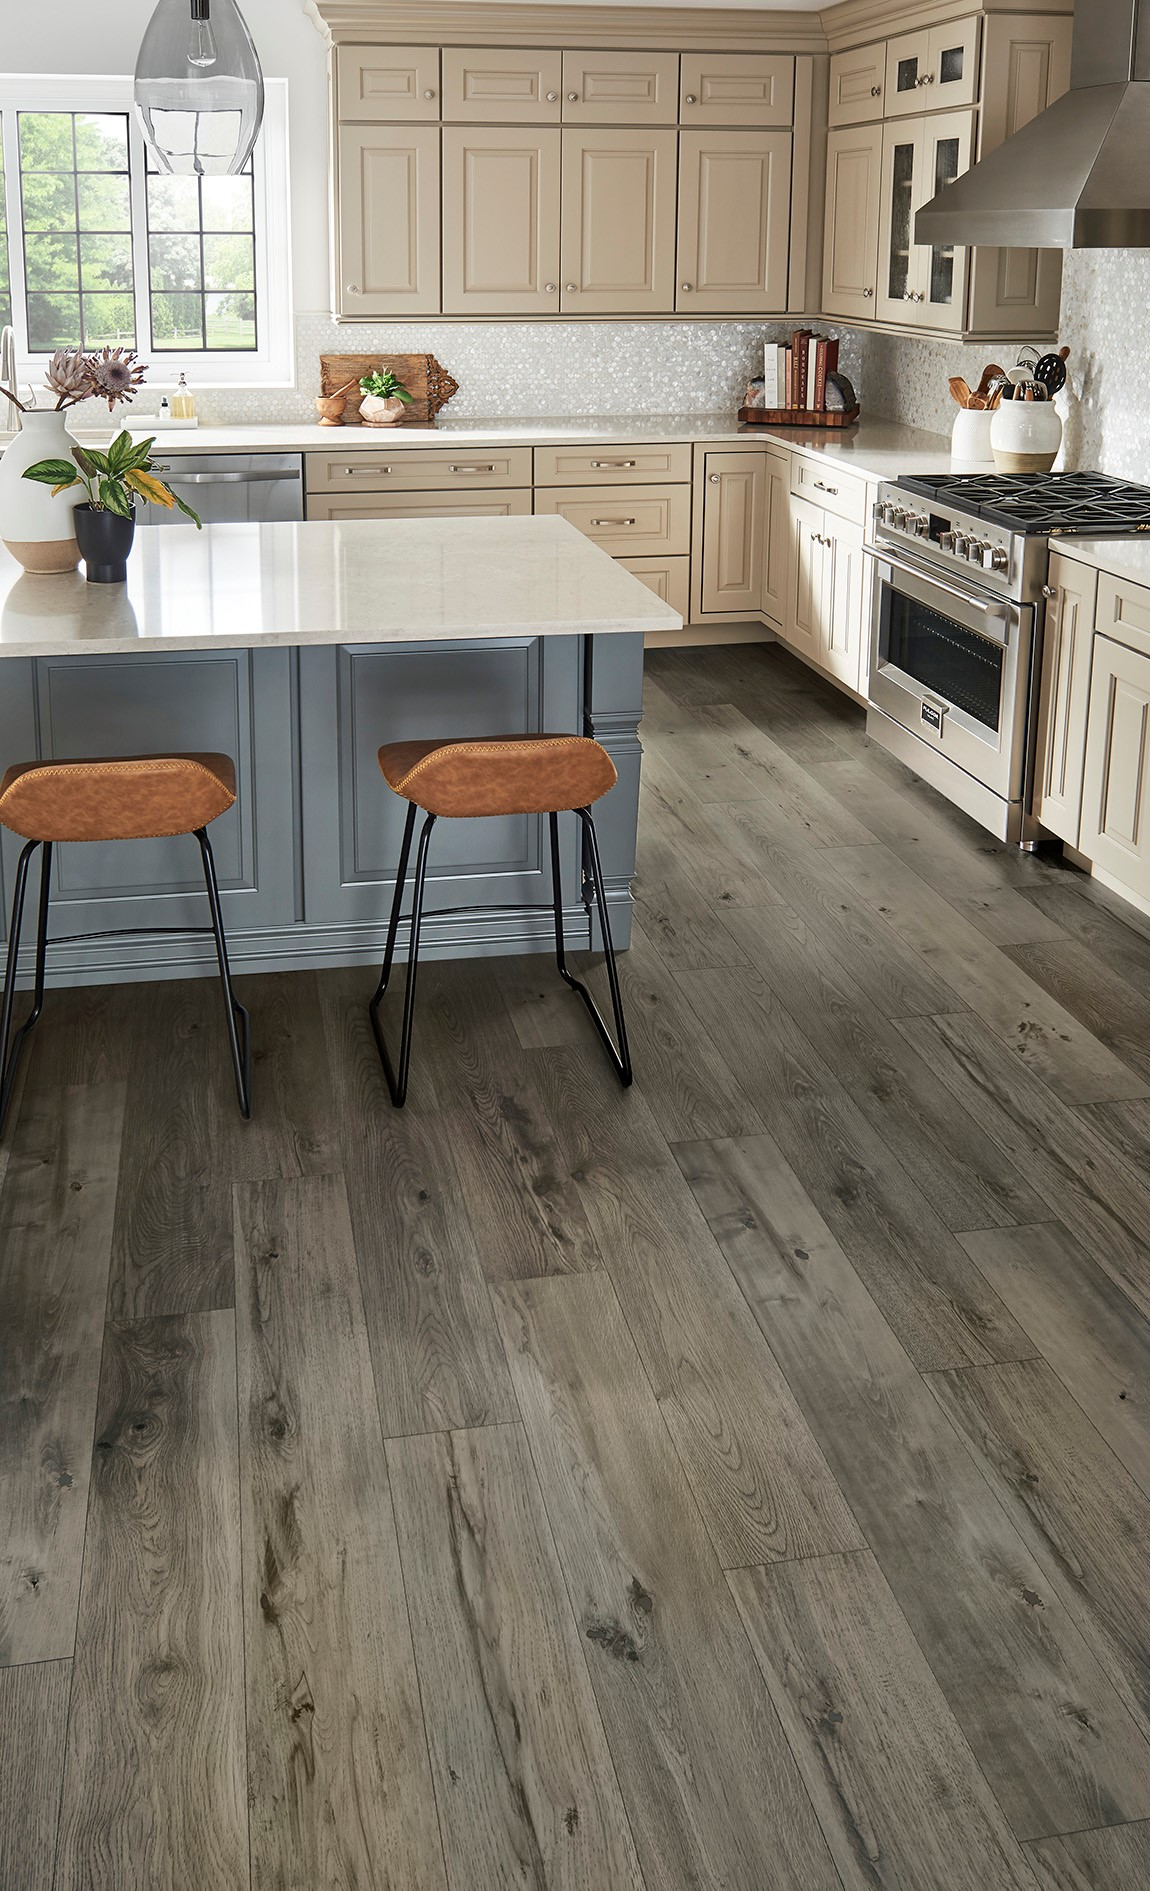 dark hardwood floor in light colored kitchen